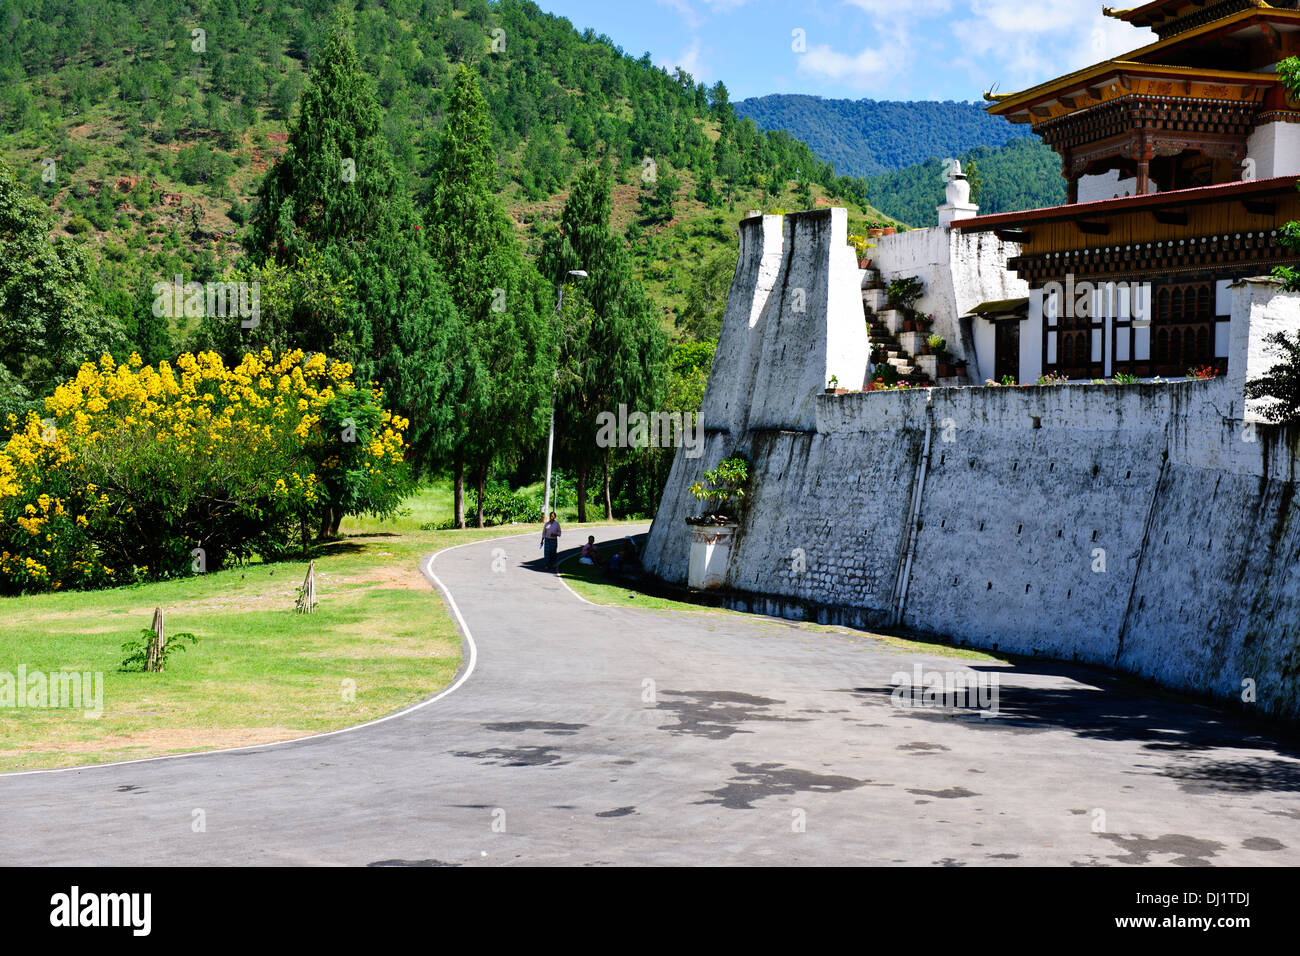 Punakha Dzong,The head of the clergy of Bhutan with his entourage of Buddhist monks spend the winter in this Dzong,Surroundings Stock Photo